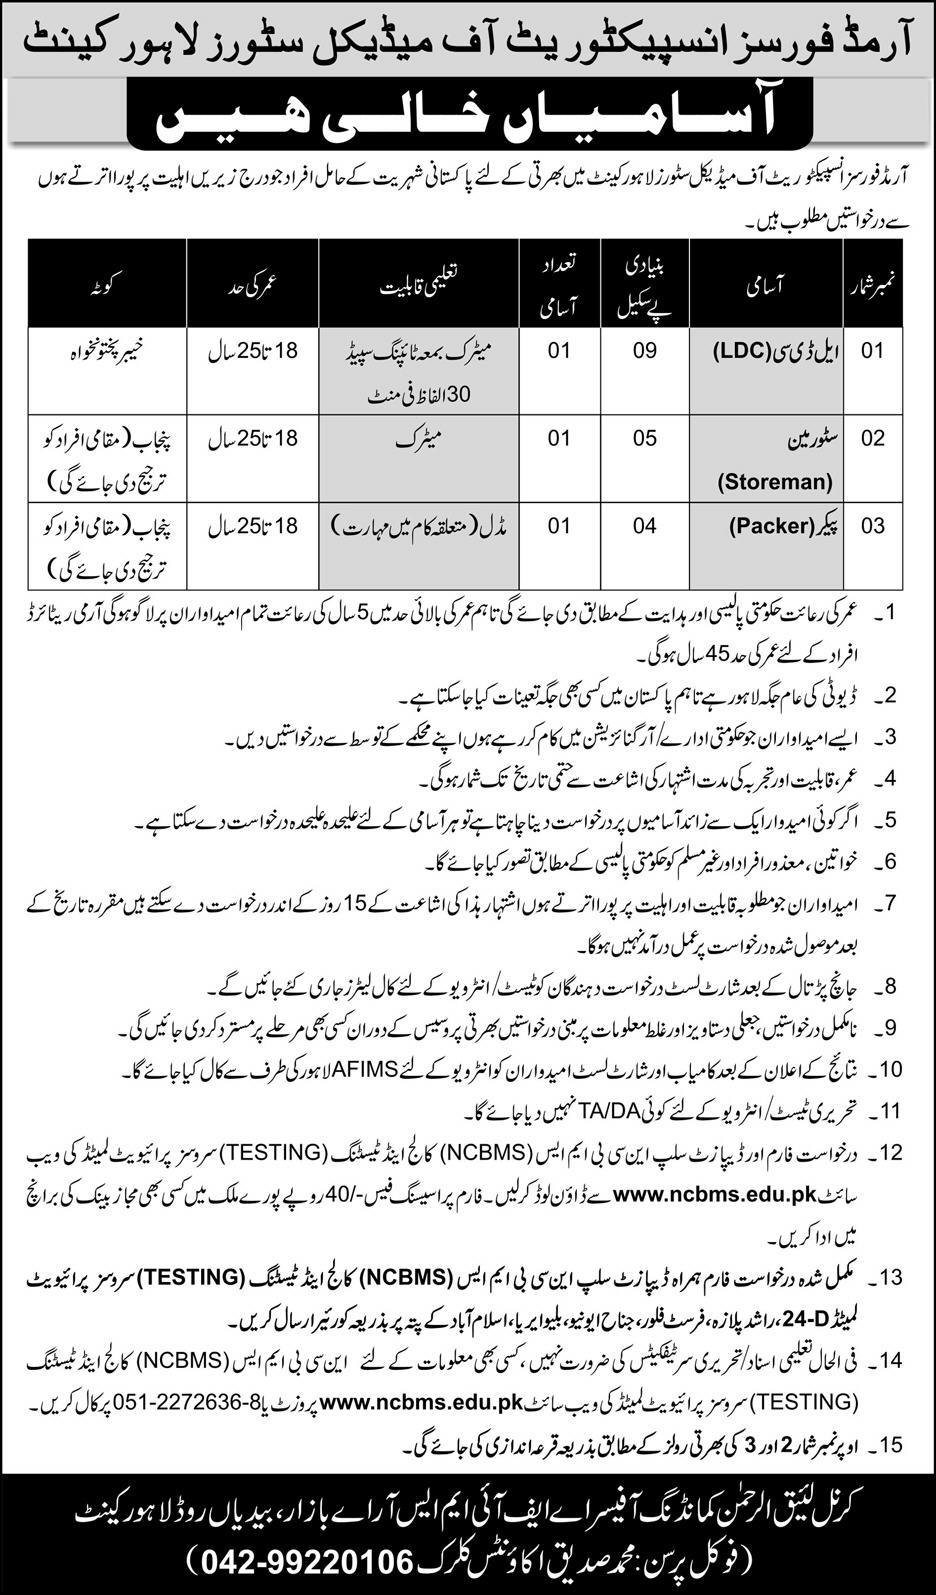 Armed Forces Inspectorate of Medical Stores Lahore Cantt Jobs 2020